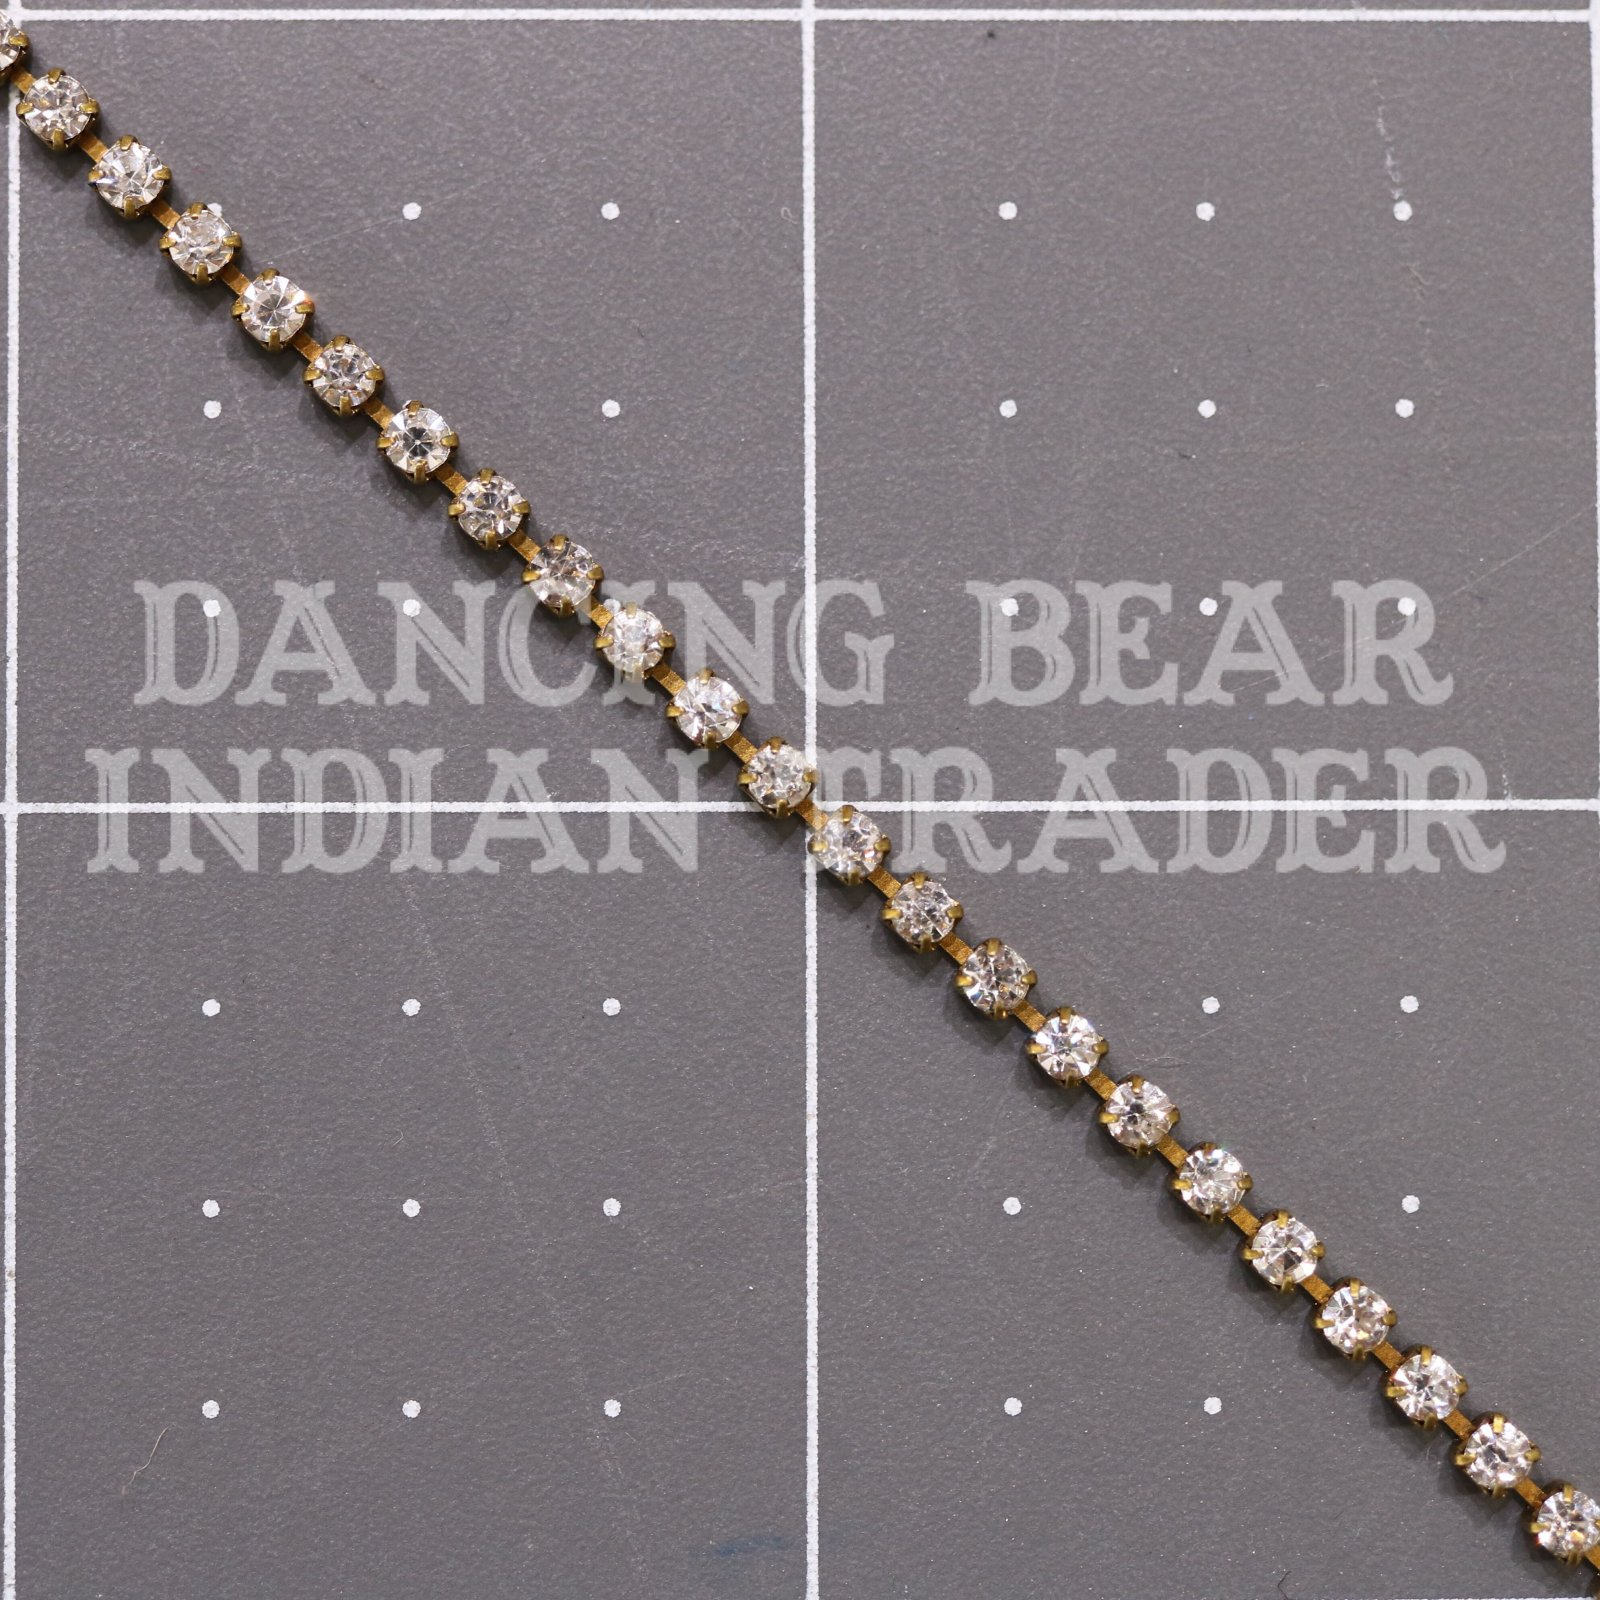 2mm Crystal Antique Brass Cup Chain per foot